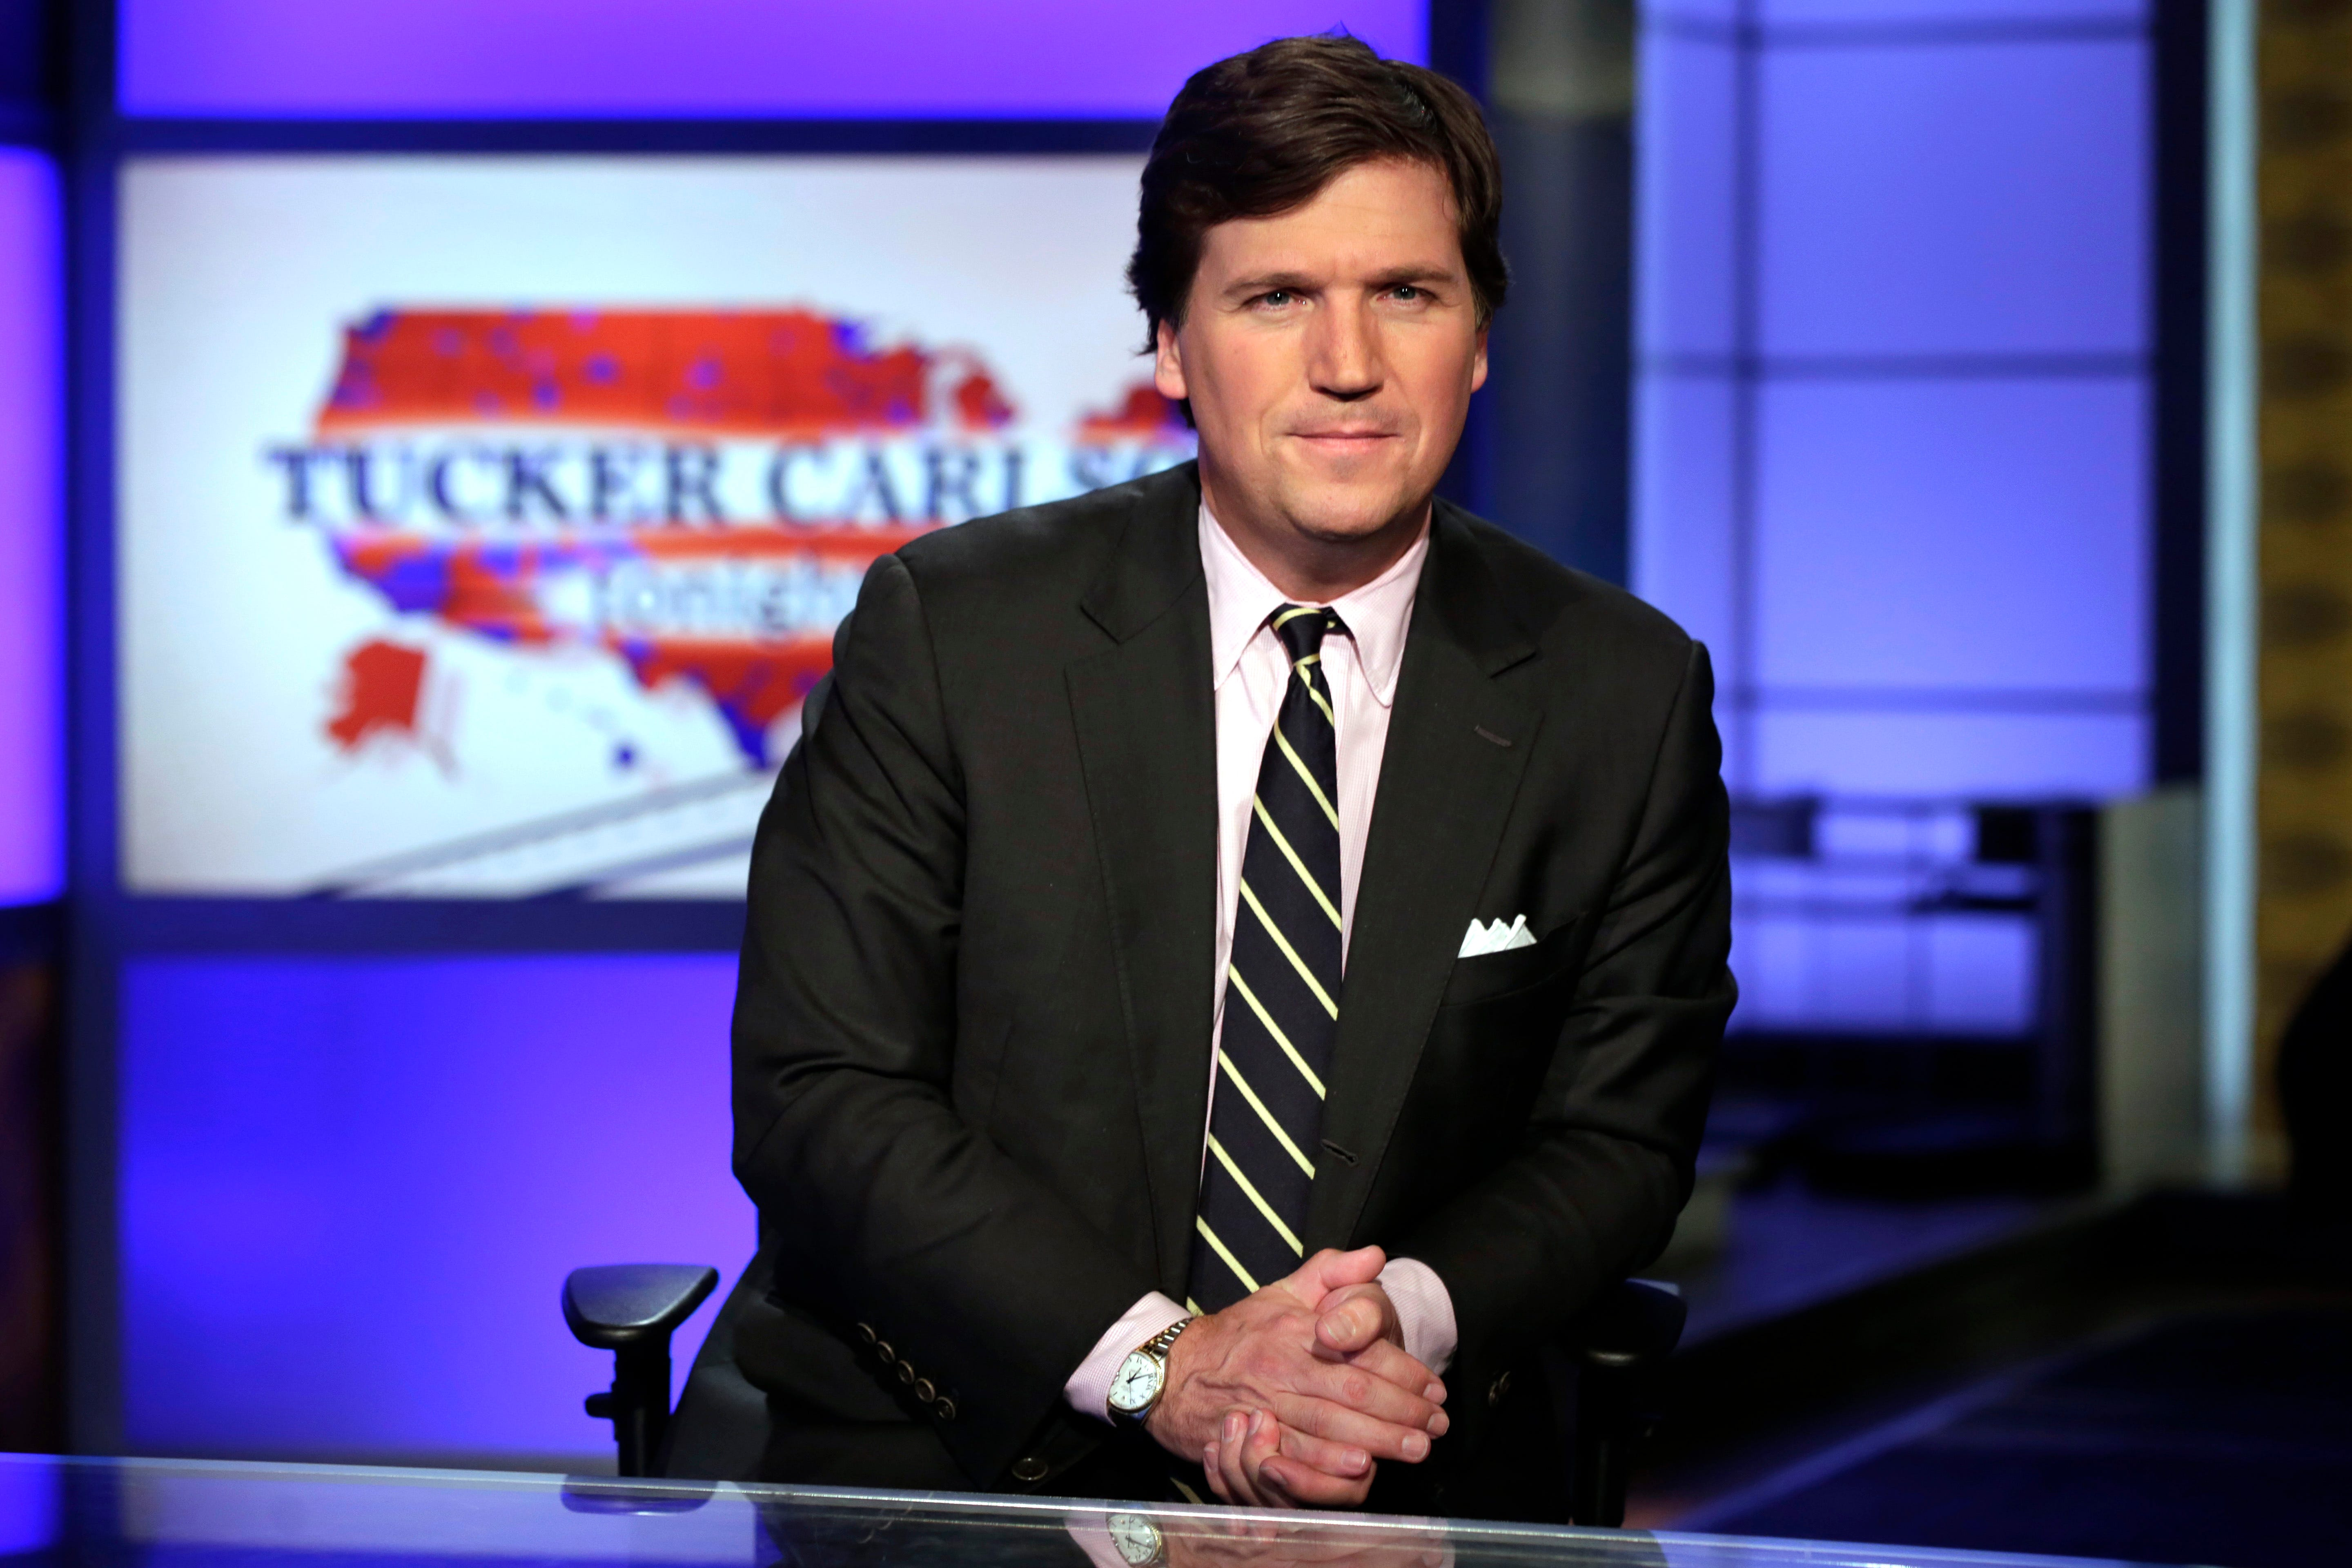 Tucker Carlson Tonight  loses Disney, T-Mobile ads after host s Black Lives Matter comments